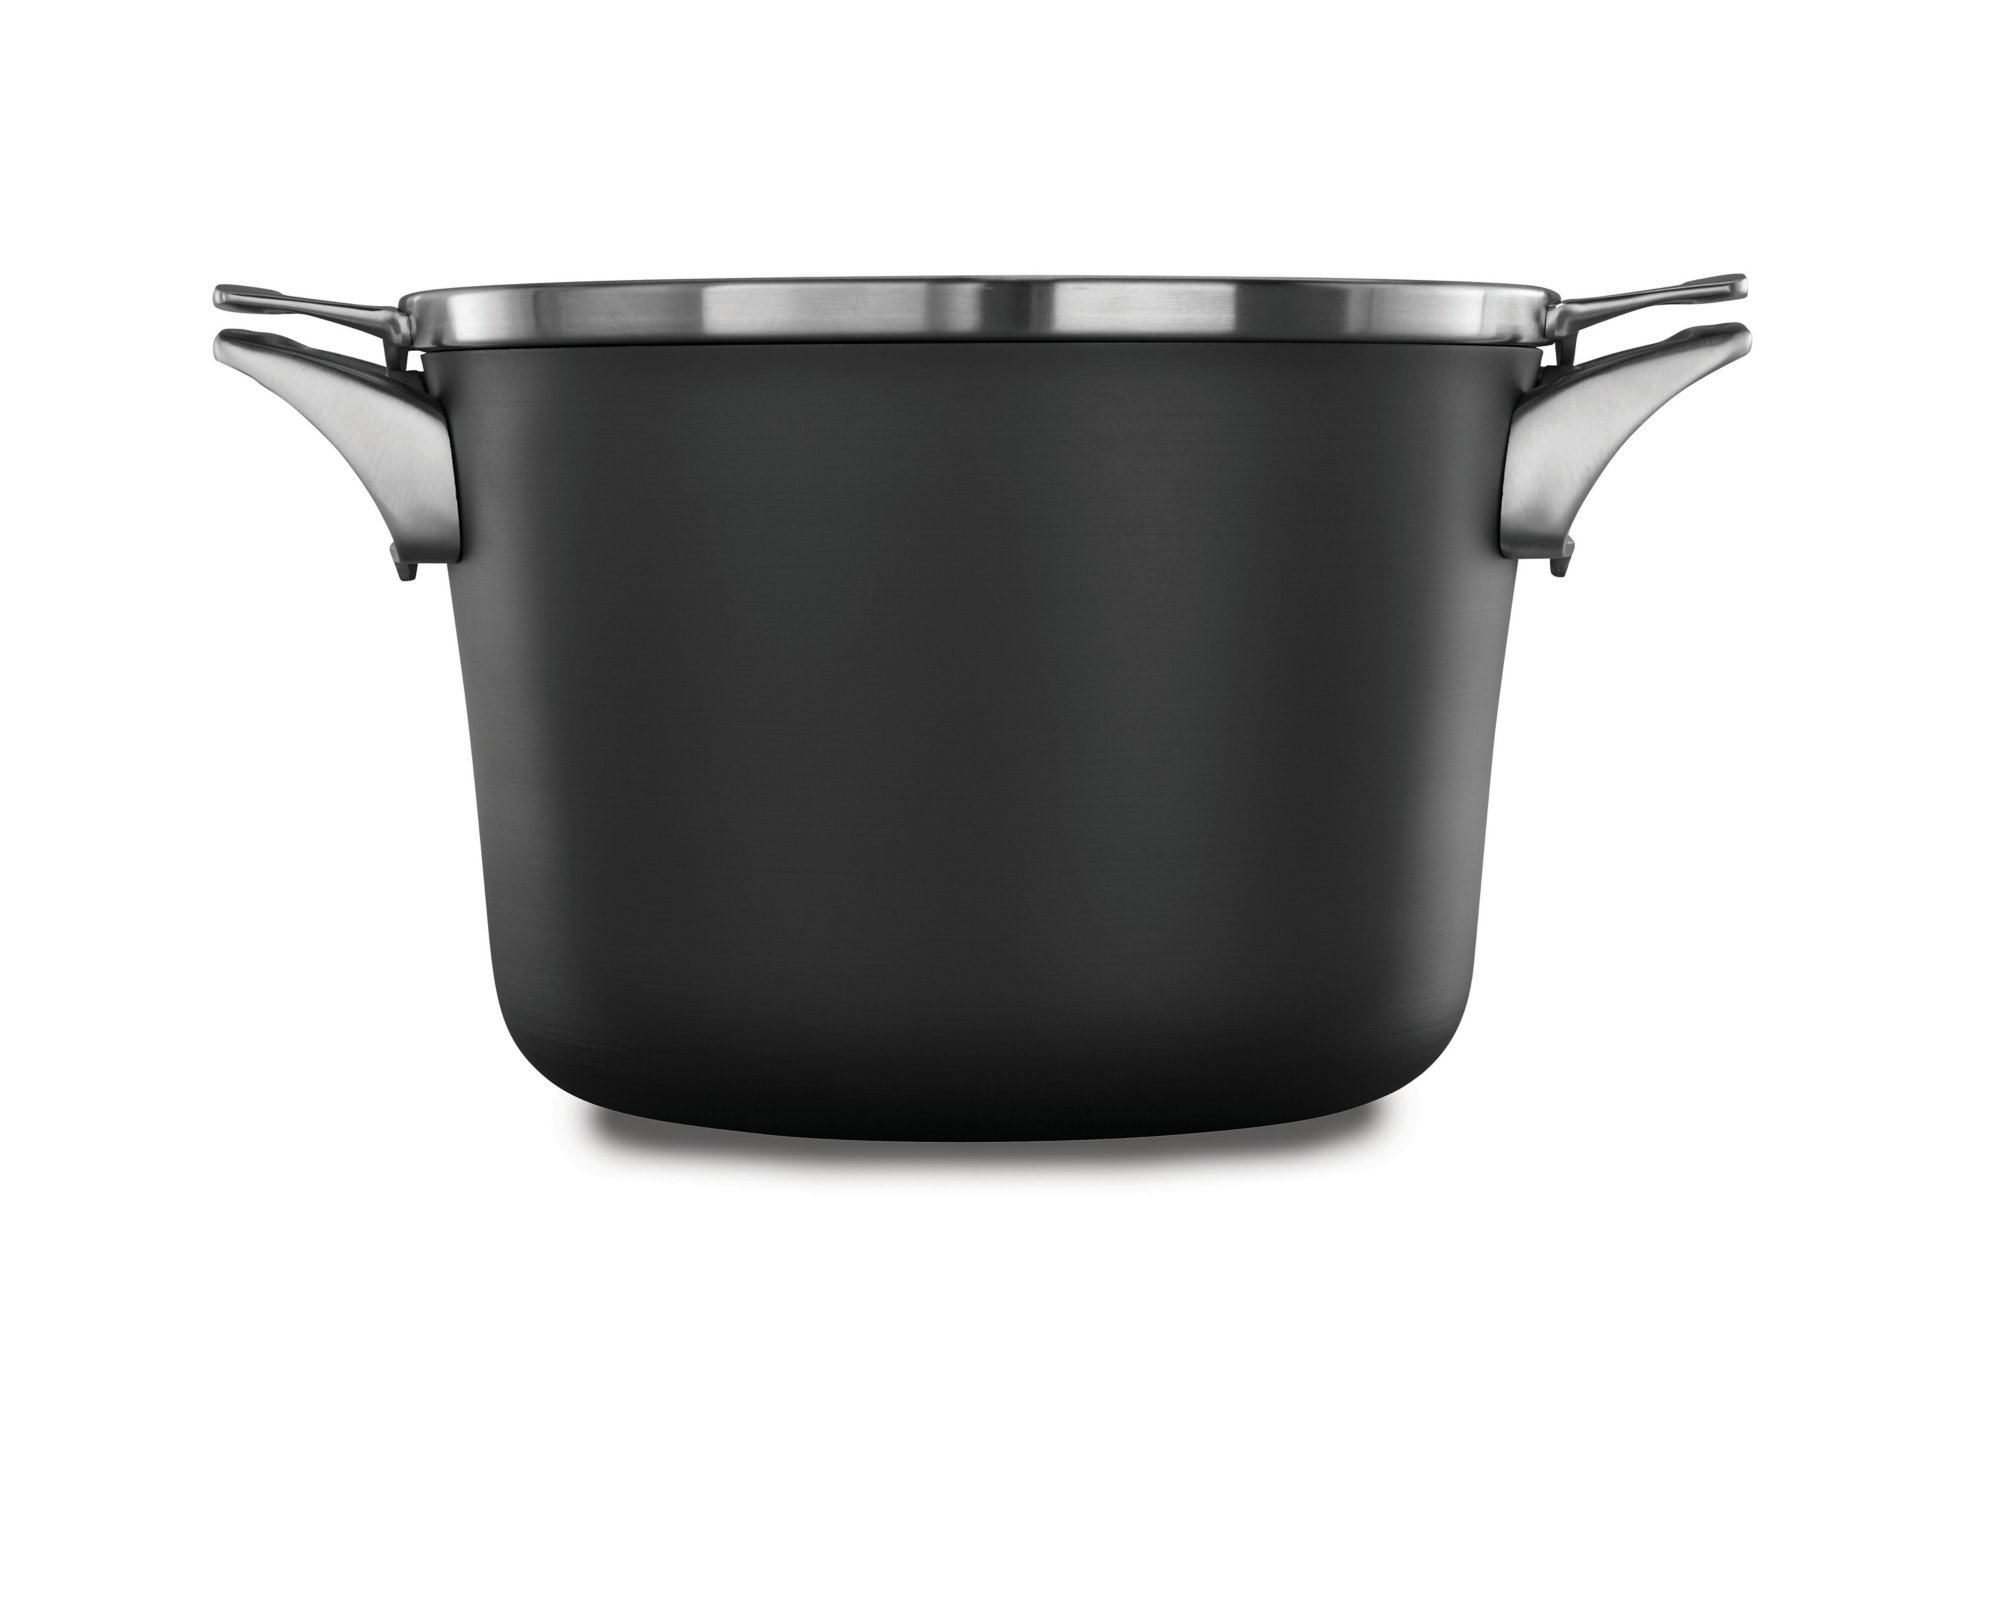 Calphalon Premier Space-Saving Hard-Anodized Nonstick Cookware, 8-Quart Stock Pot with Cover